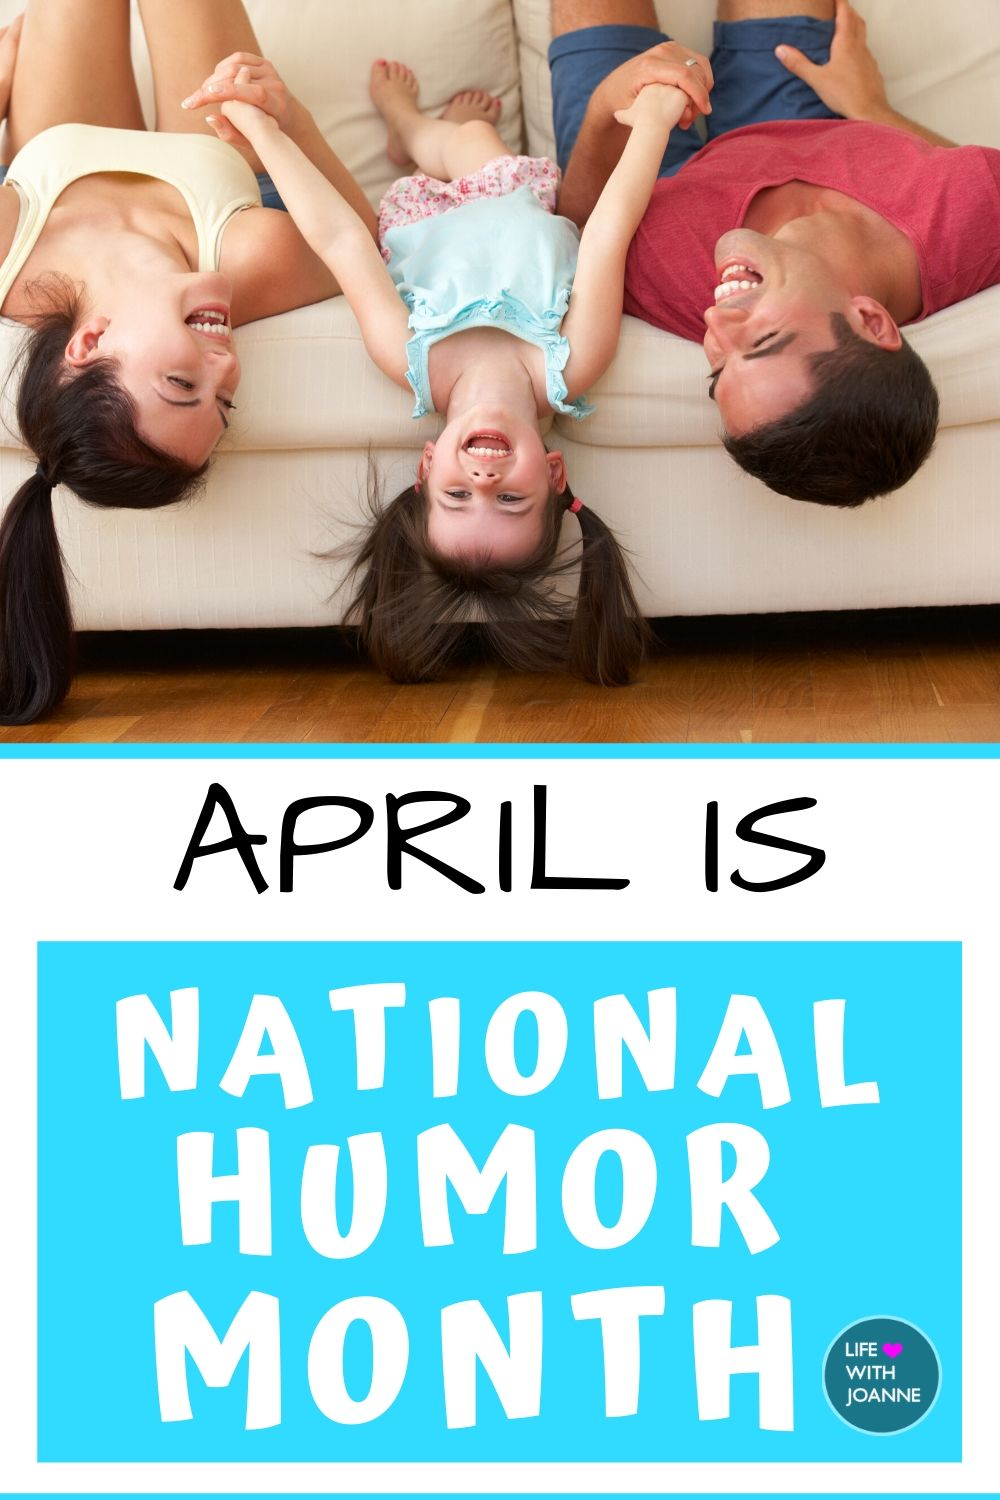 National Humor Month